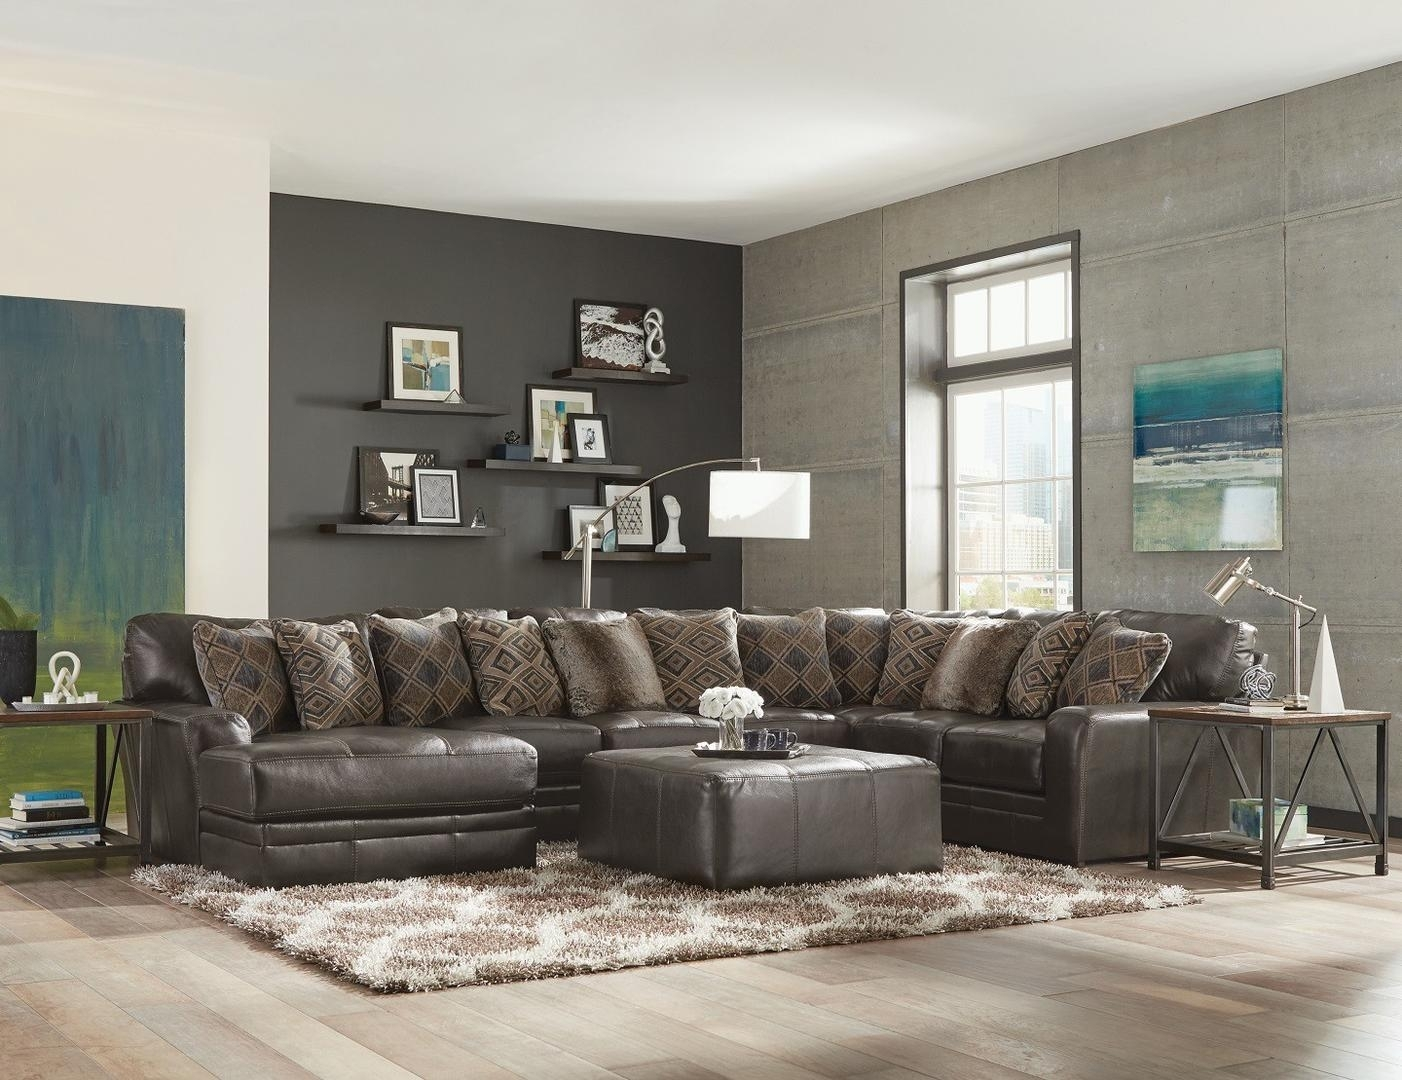 Jackson Furniture 4378753072128328308328 Denali Series Stationary in Jackson 6 Piece Power Reclining Sectionals (Image 14 of 30)